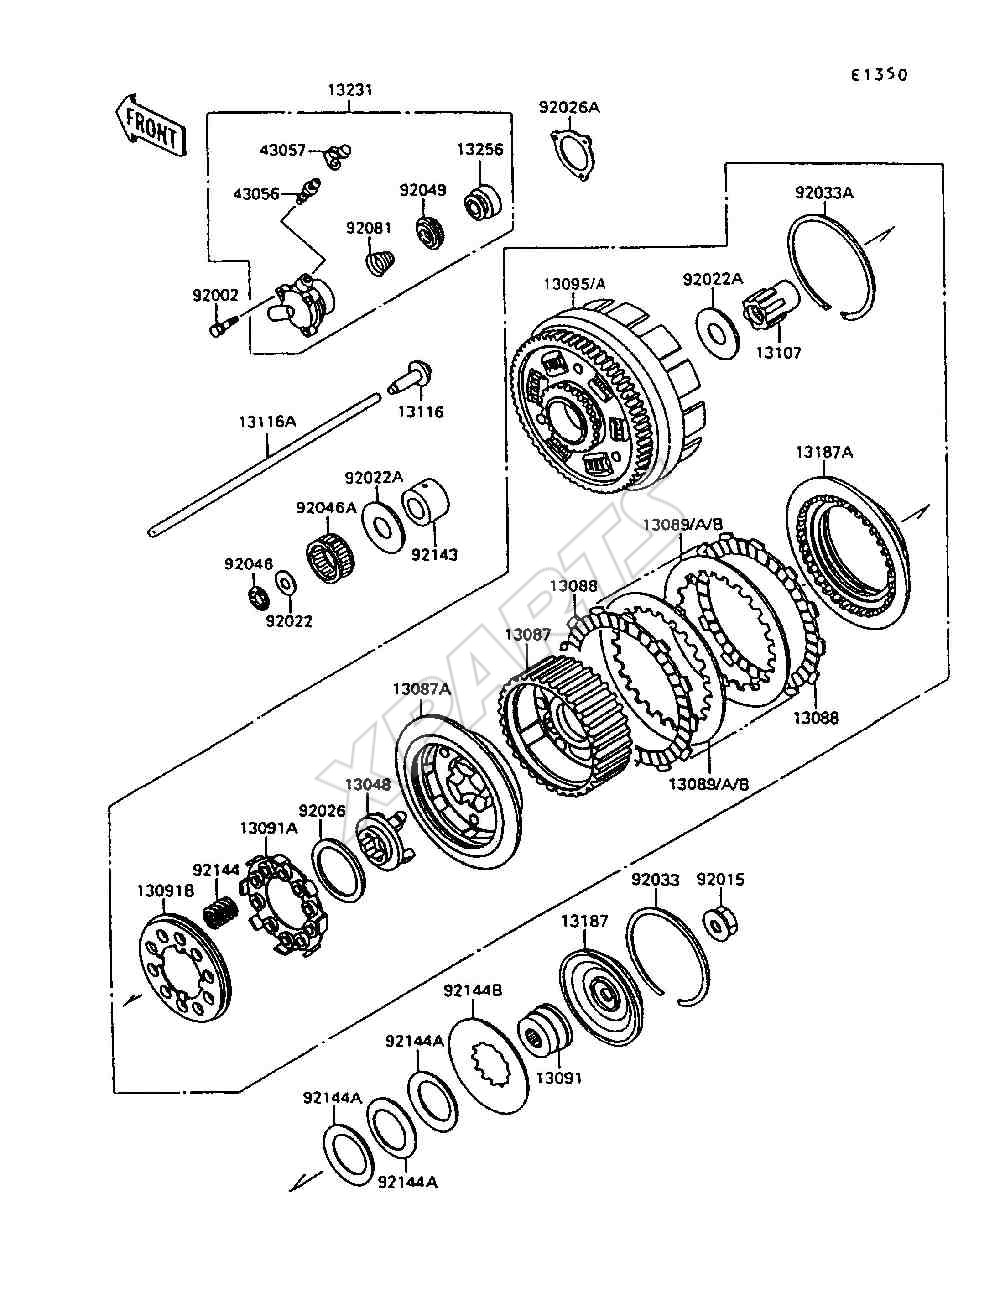 1995 Kawasaki Vulcan 1500 Wiring Diagram And Schematics 98 300 Bayou Clic M35a2 Electric 49200282 Wiringhtml